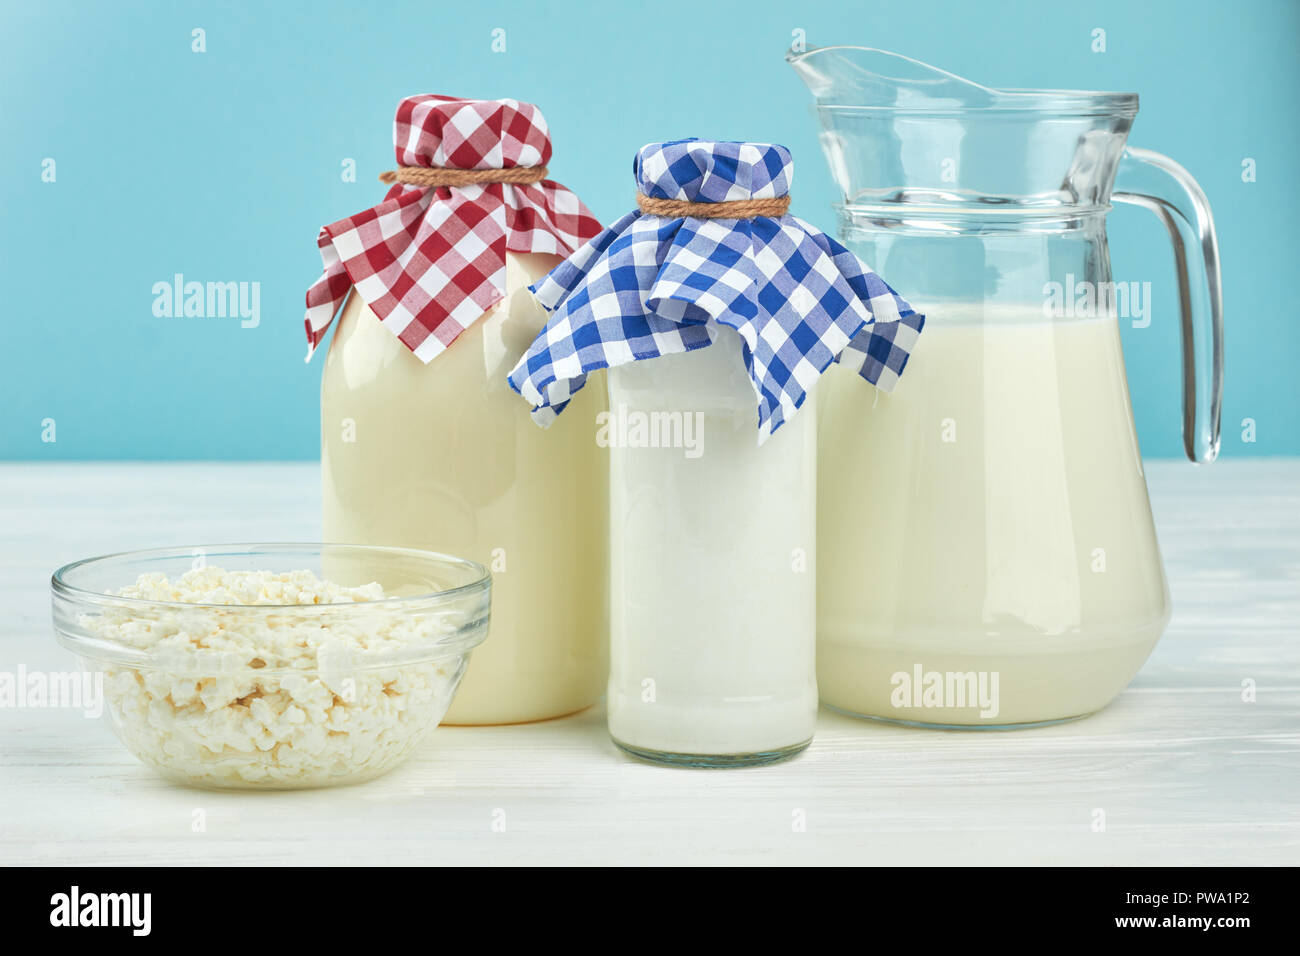 Dairy products background  Old-fashioned glass bottles with